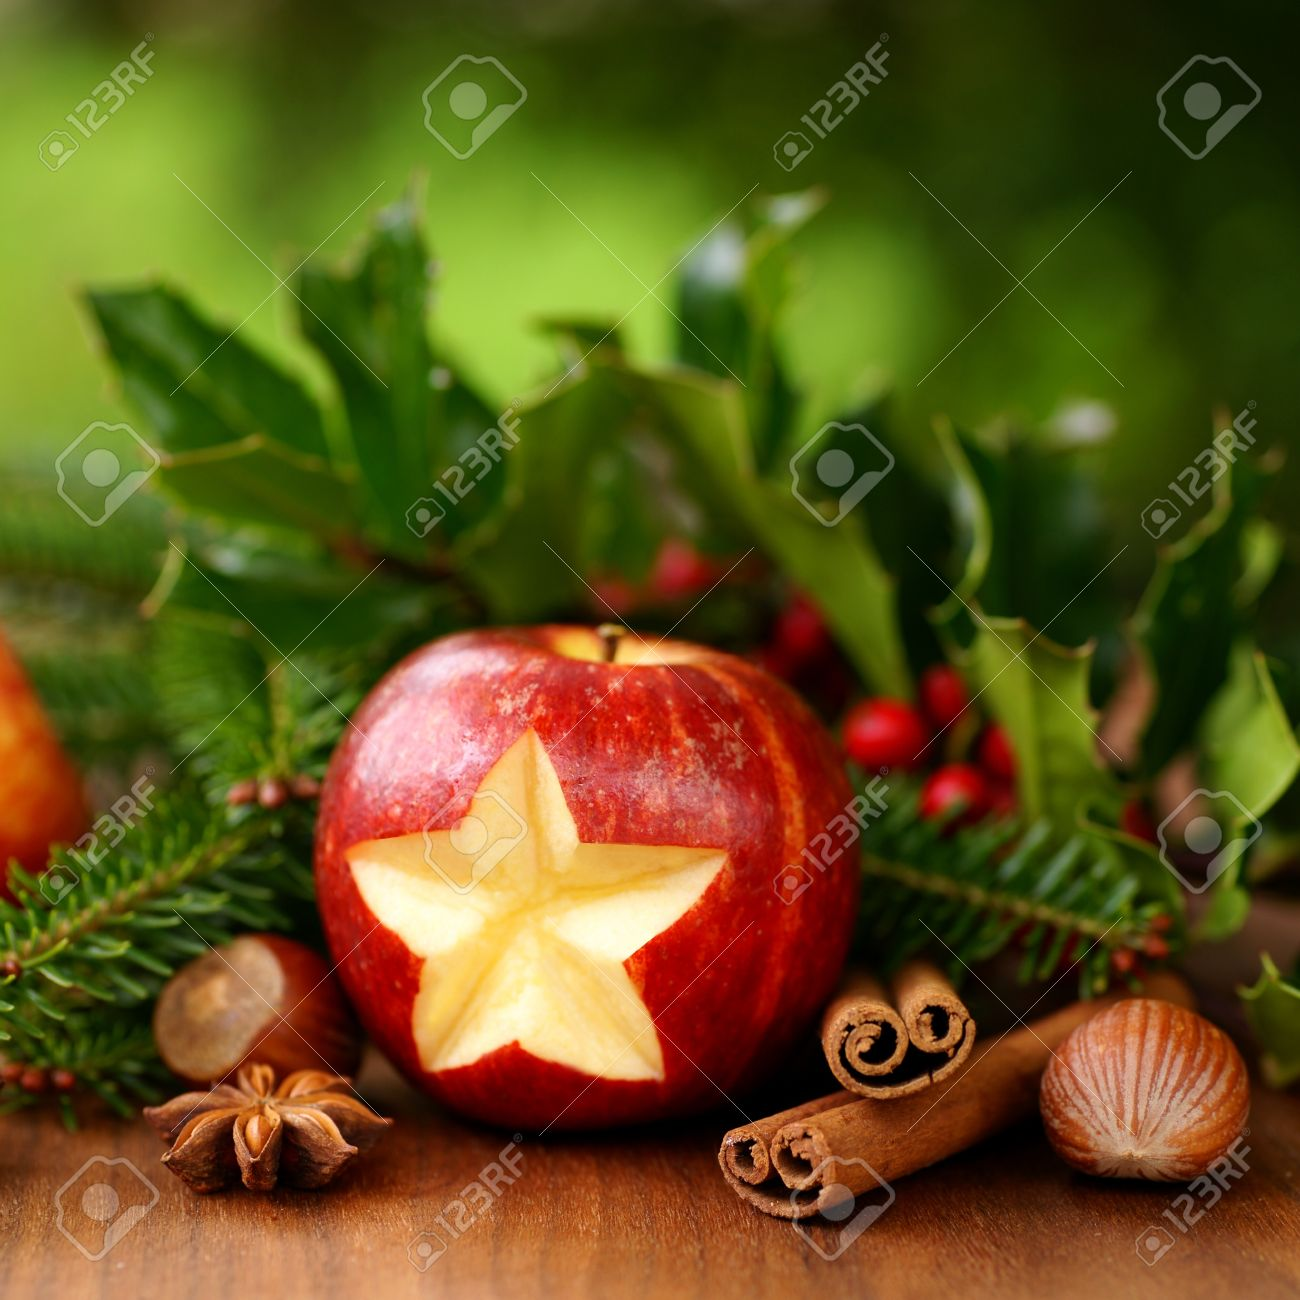 Christmas Apple Stock Photo, Picture And Royalty Free Image. Image ...